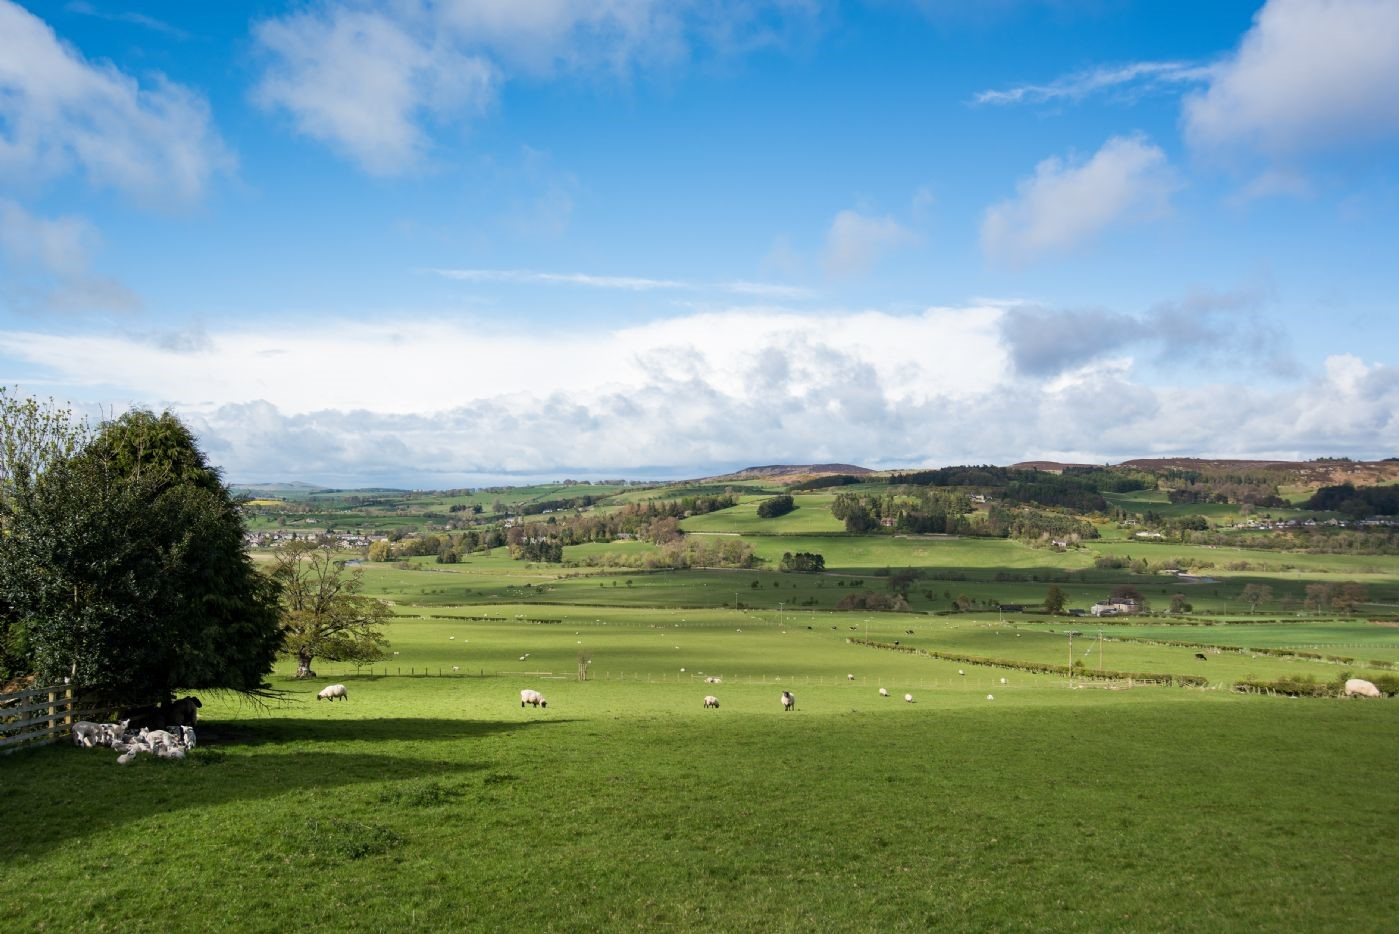 The breathtaking views over the rich Northumbrian countryside offer a true sense of escapism.